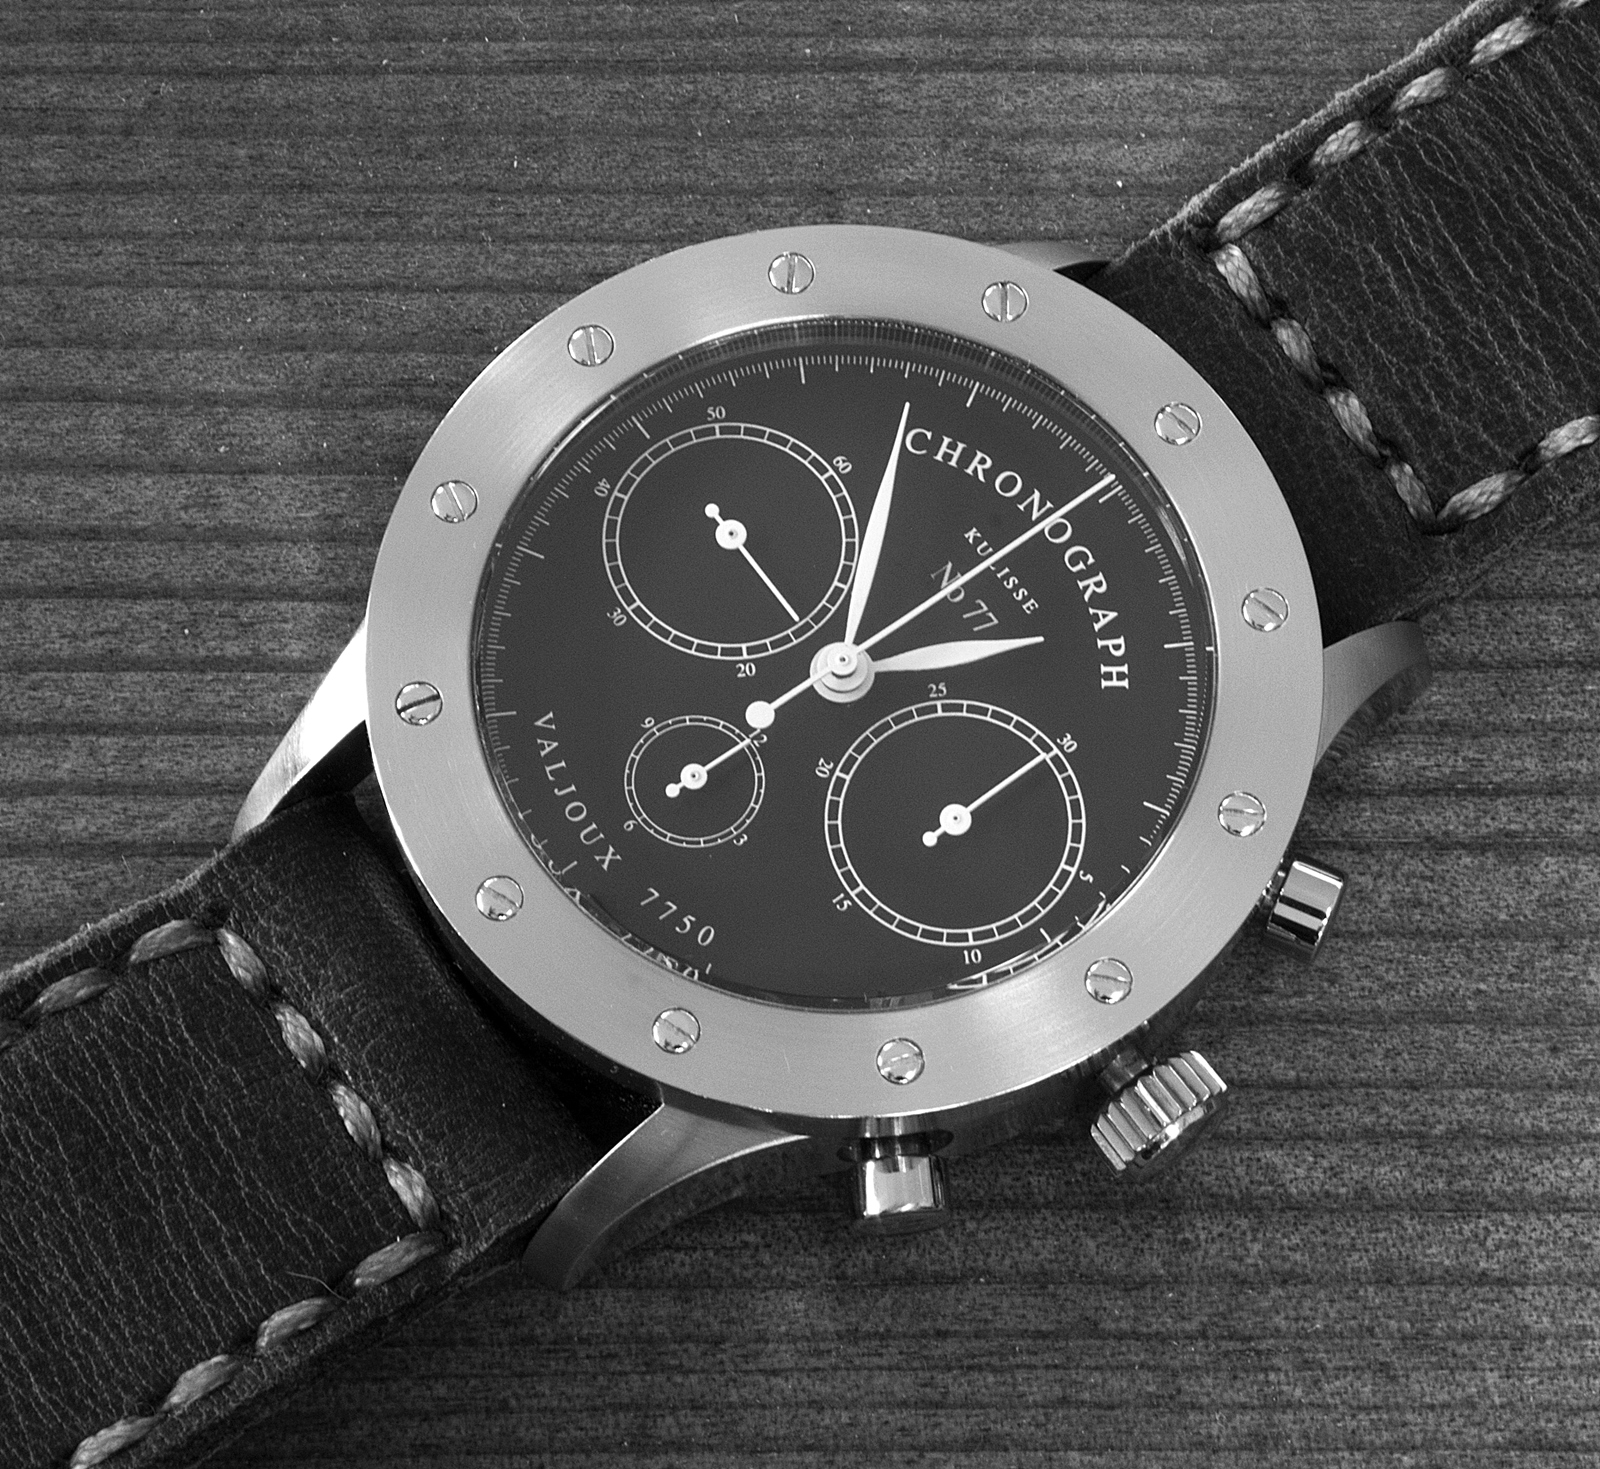 detail schauer sp watches search